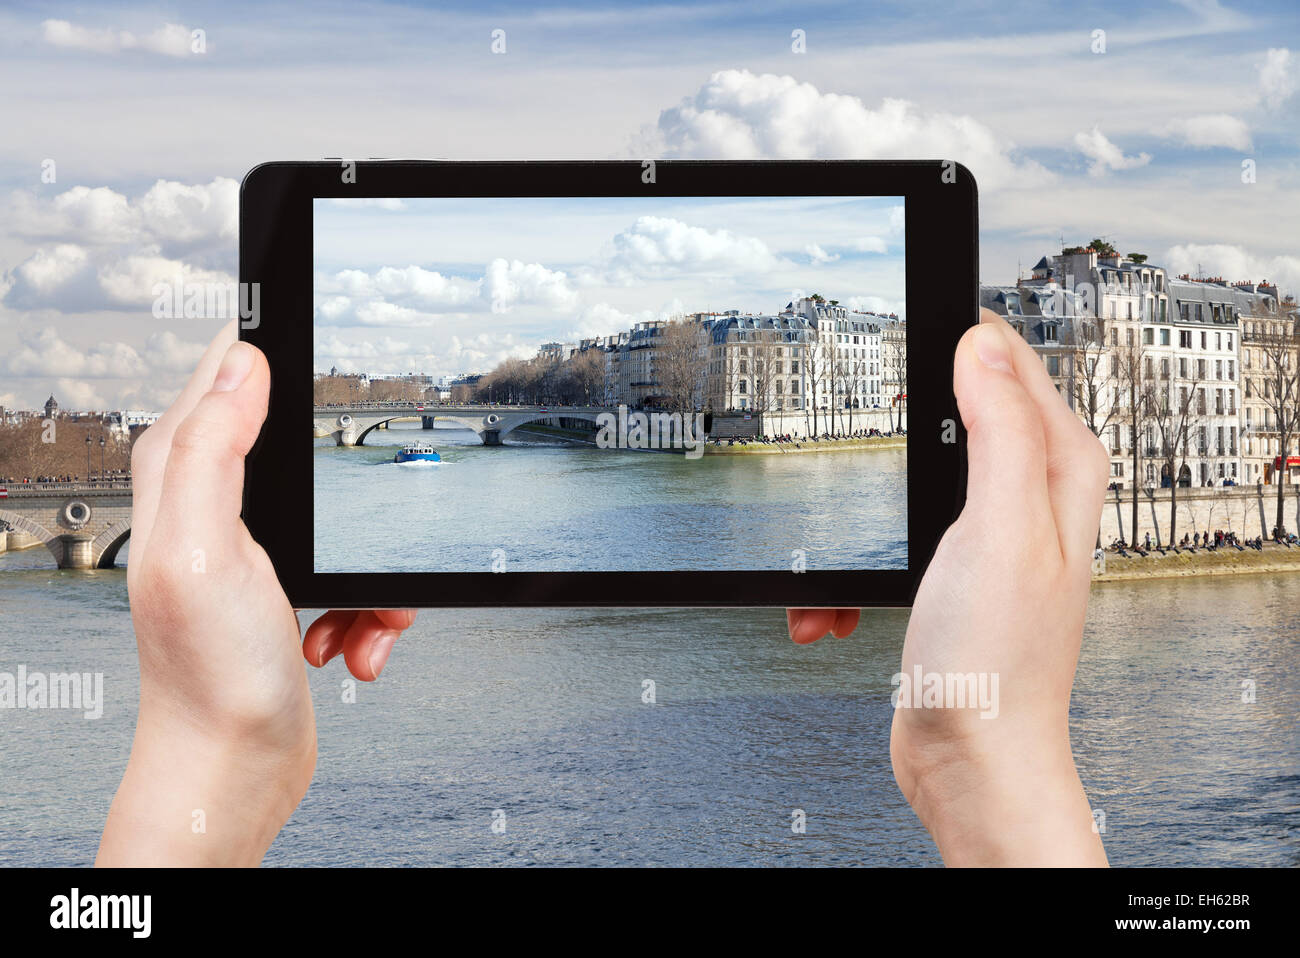 travel concept - tourist taking photo of Seine river and Pont Louis-Philippe in Paris on mobile gadget, France - Stock Image